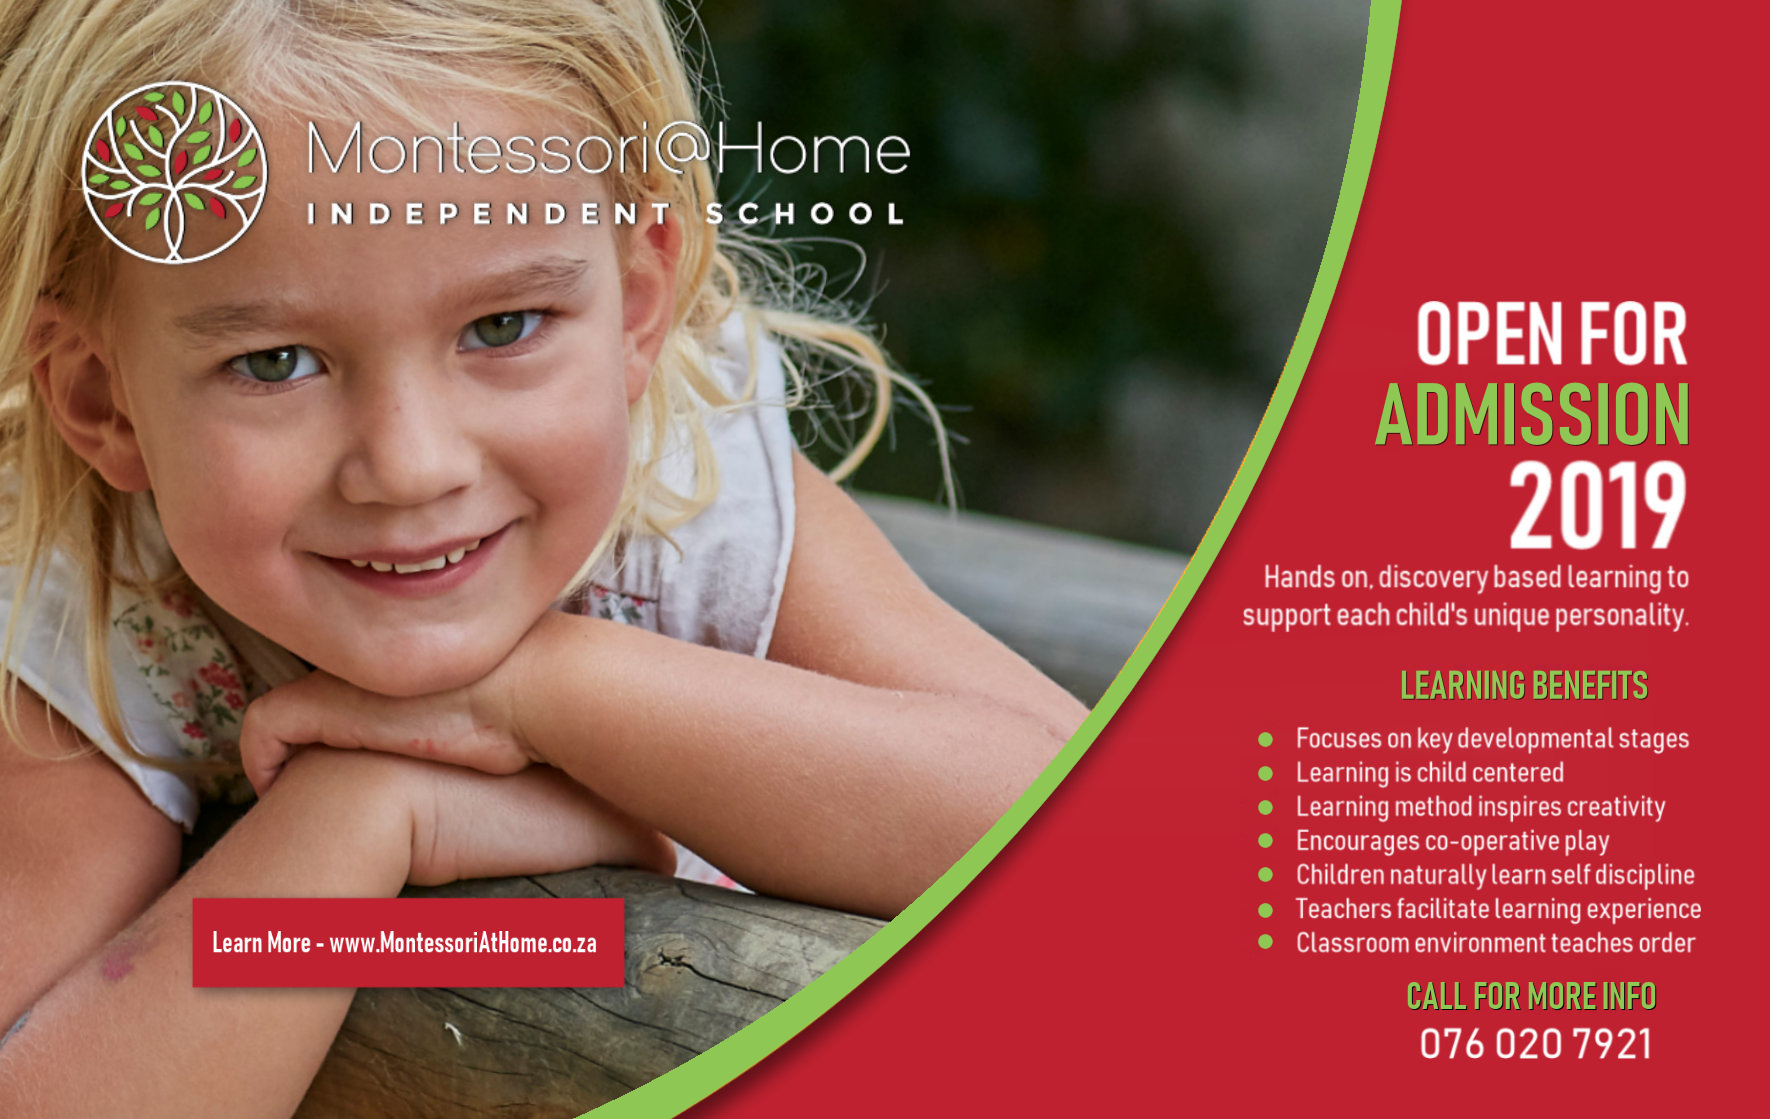 _DSC1750 Montessori@Home Social LogoMarketingAdmission.jpg